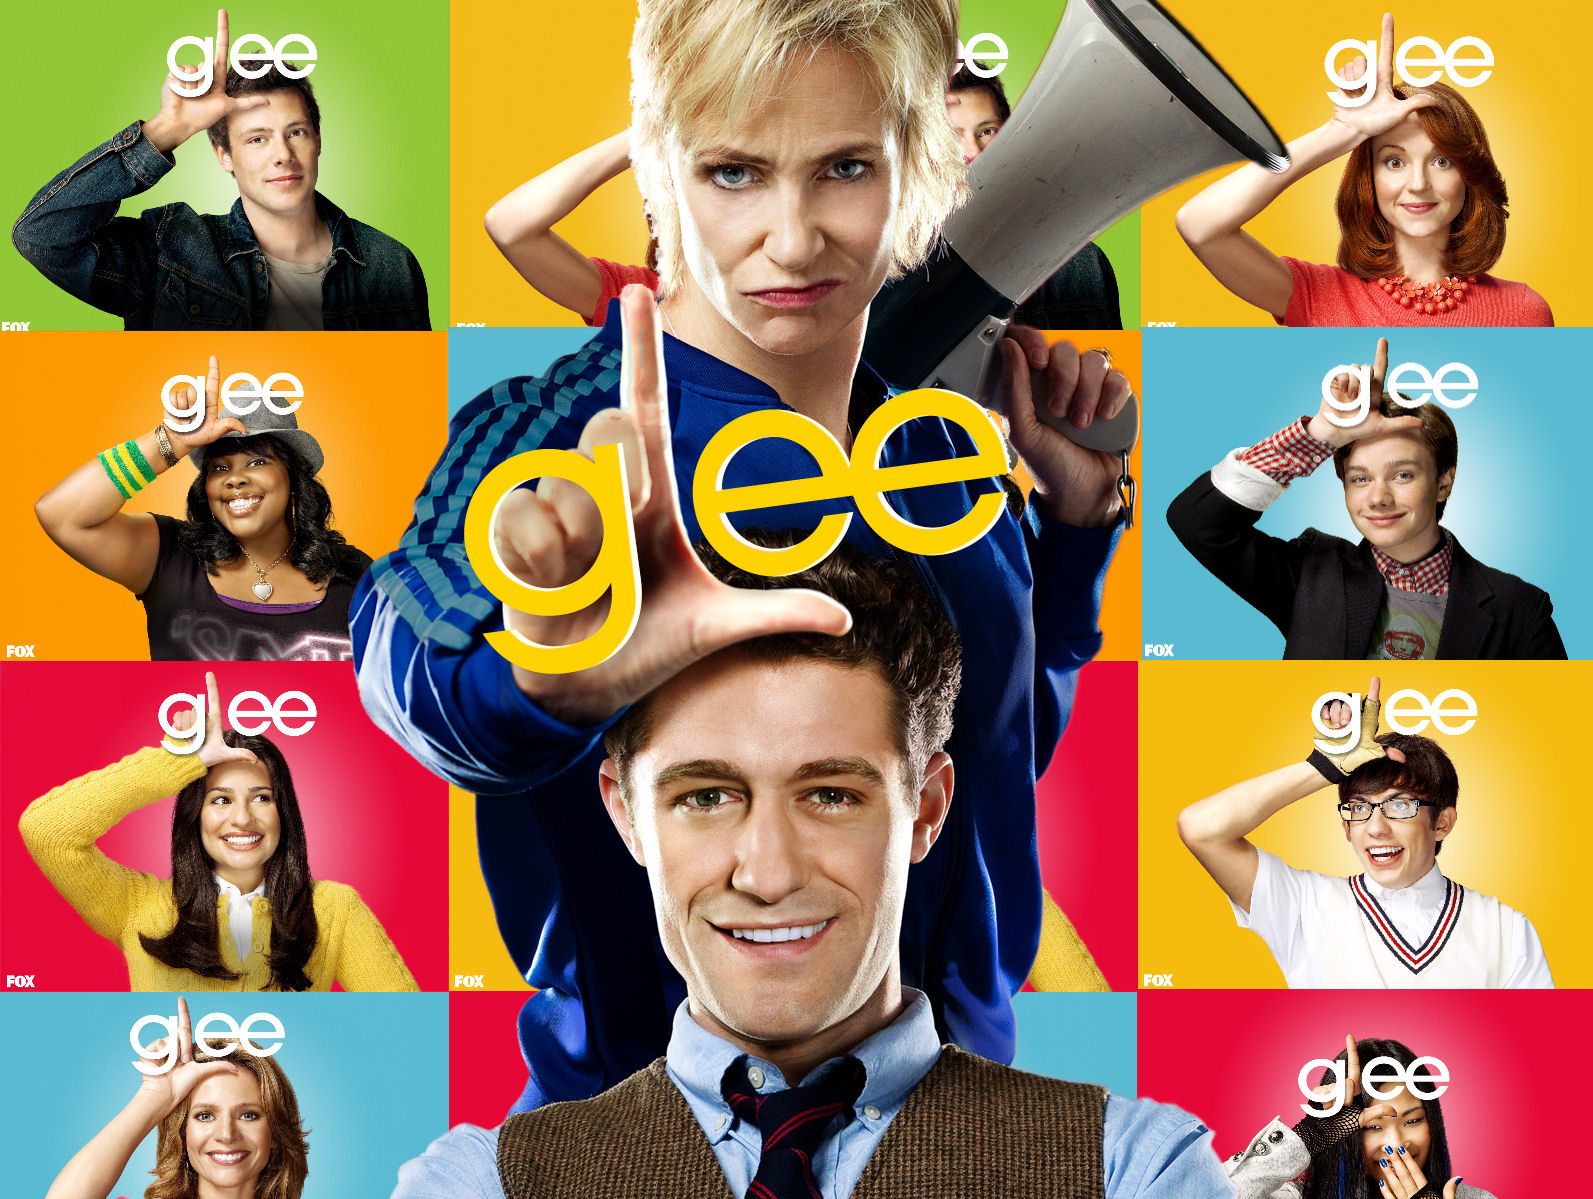 Glee wallpaper 7